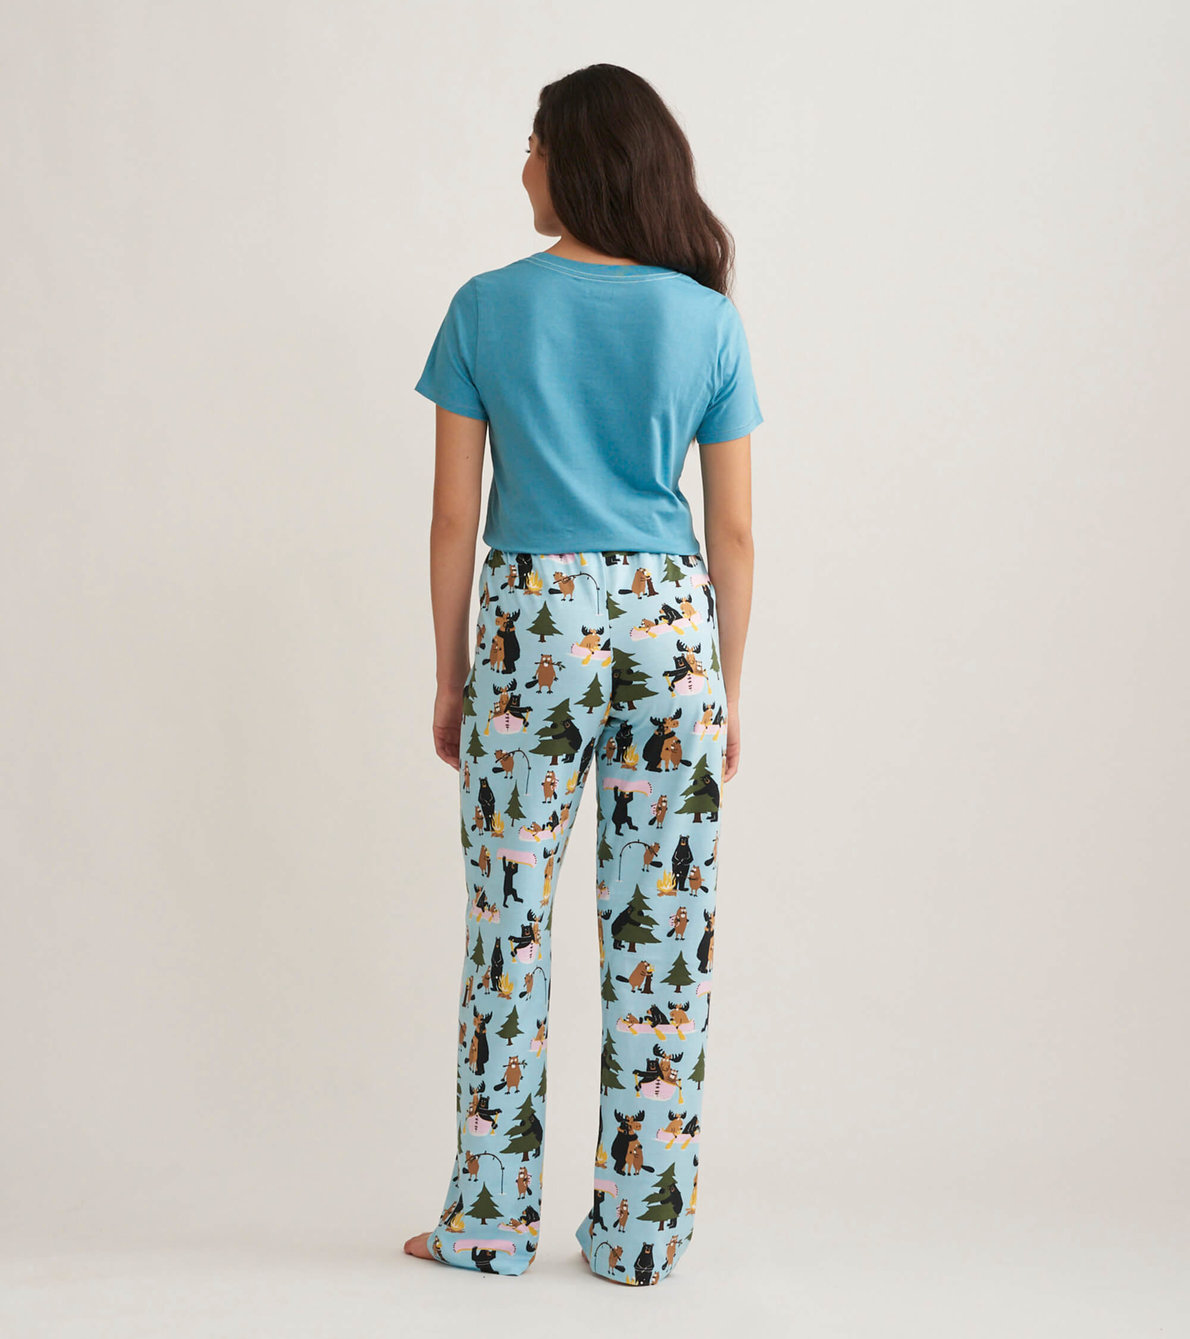 View larger image of Life in the Wild Women's Pajama Tee